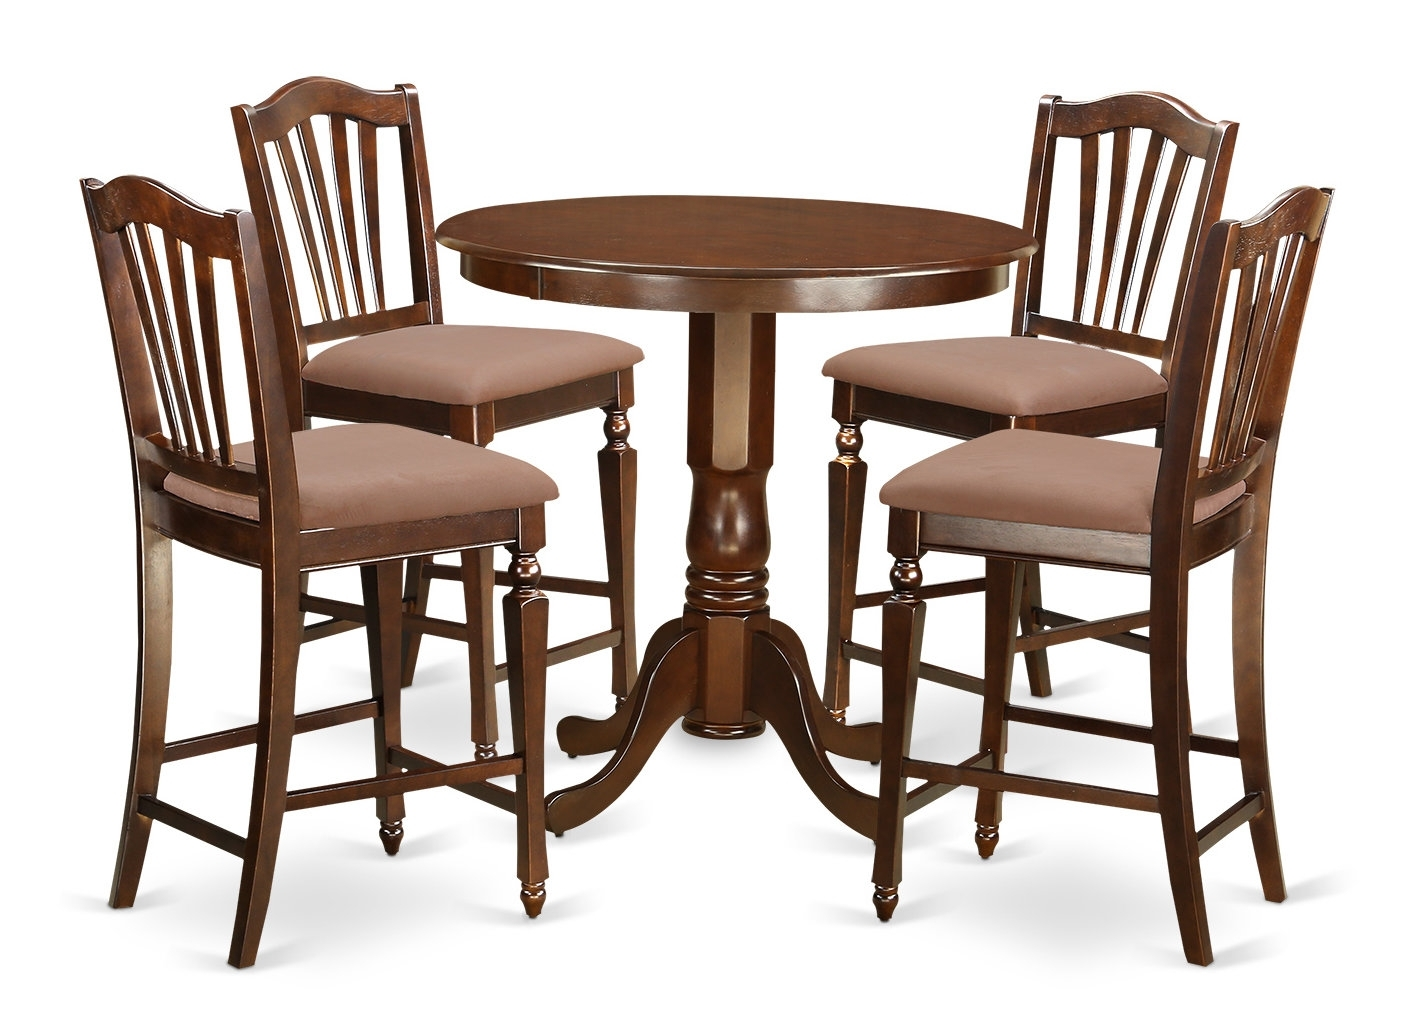 East West Jackson 5 Piece Counter Height Pub Table Set | Wayfair In Most Recently Released Jaxon Grey 7 Piece Rectangle Extension Dining Sets With Uph Chairs (View 15 of 20)